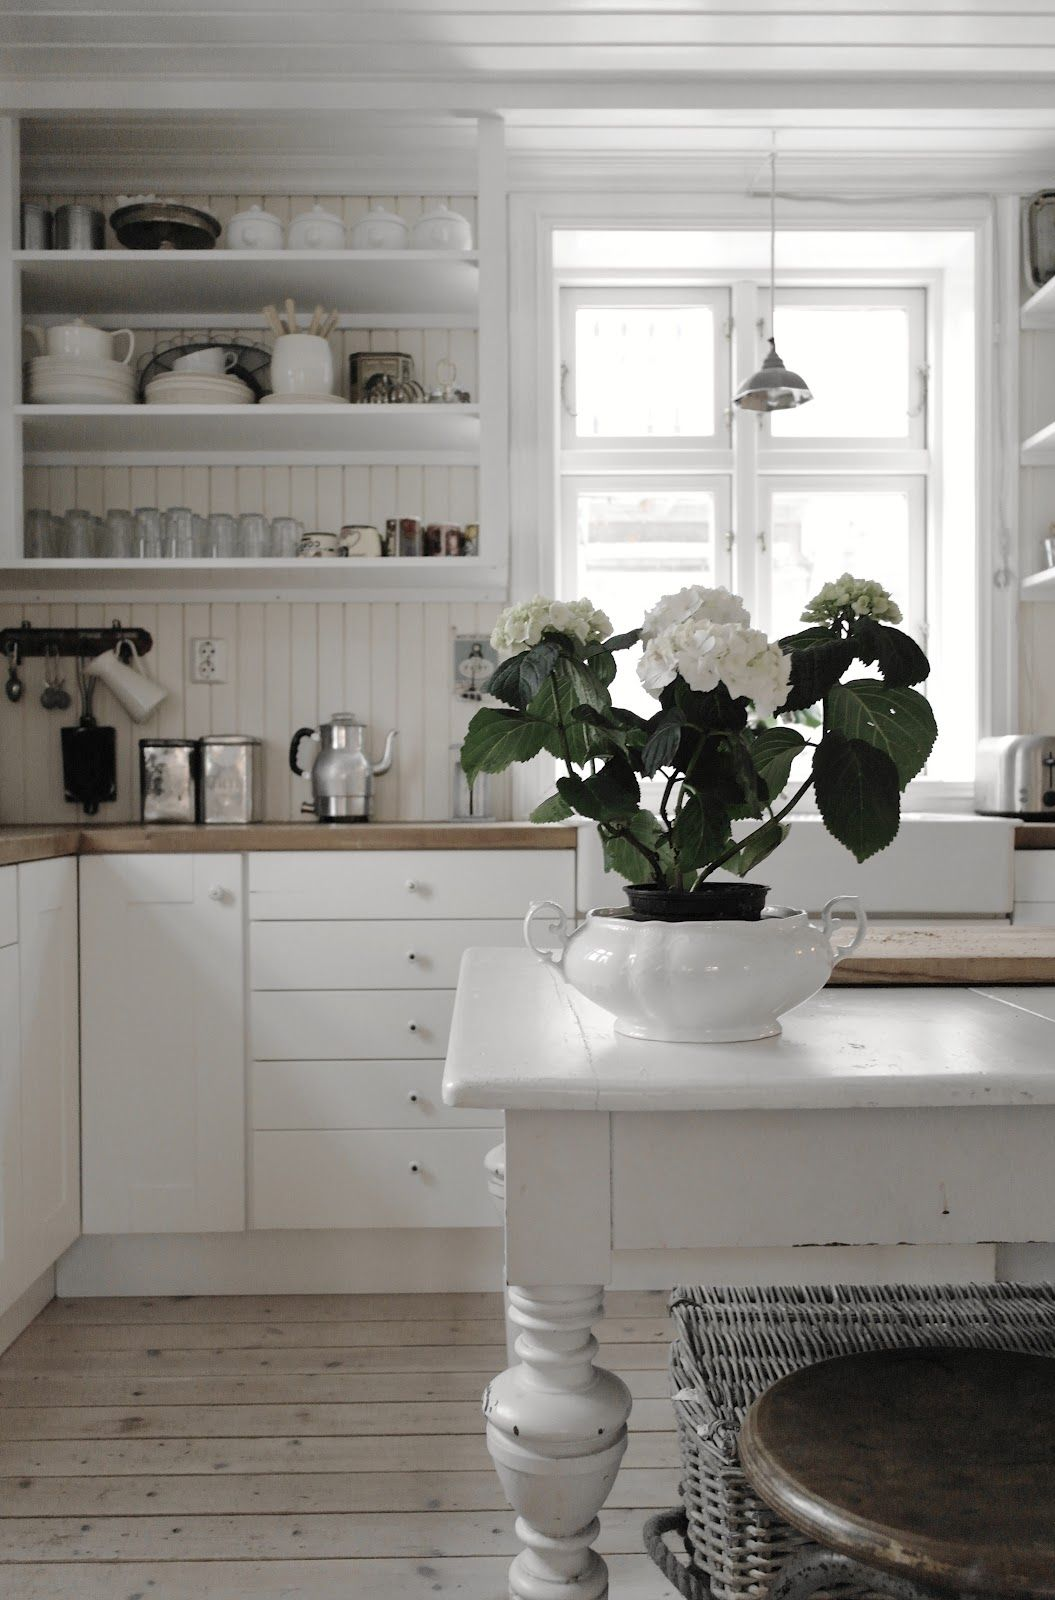 kitchen white decor, I like the wood paneling on the